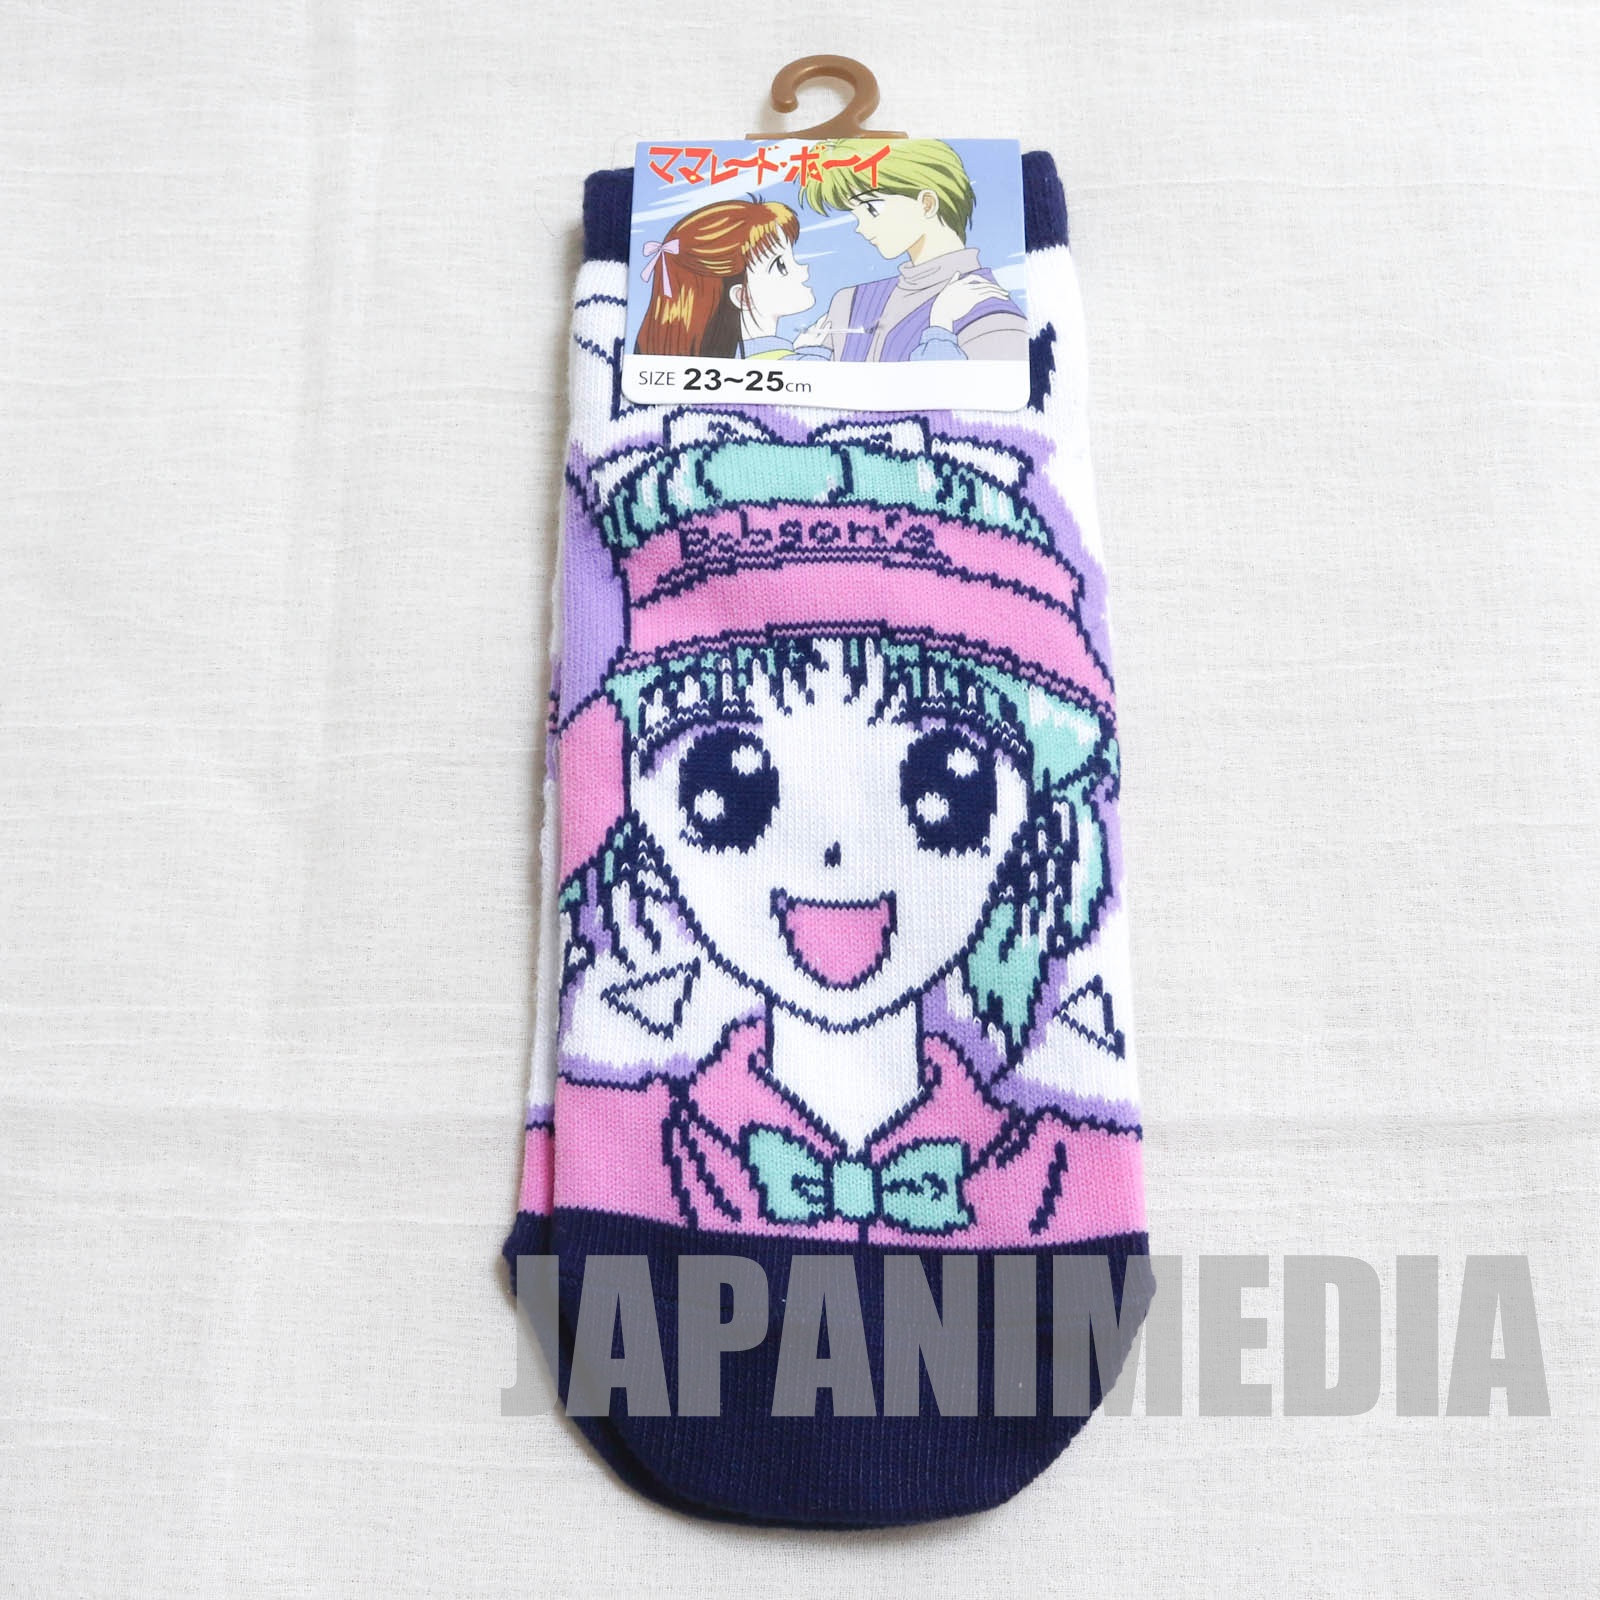 Marmalade Boy Miki Koishikawa a Pair of Socks Size 23-25cm JAPAN ANIME 1